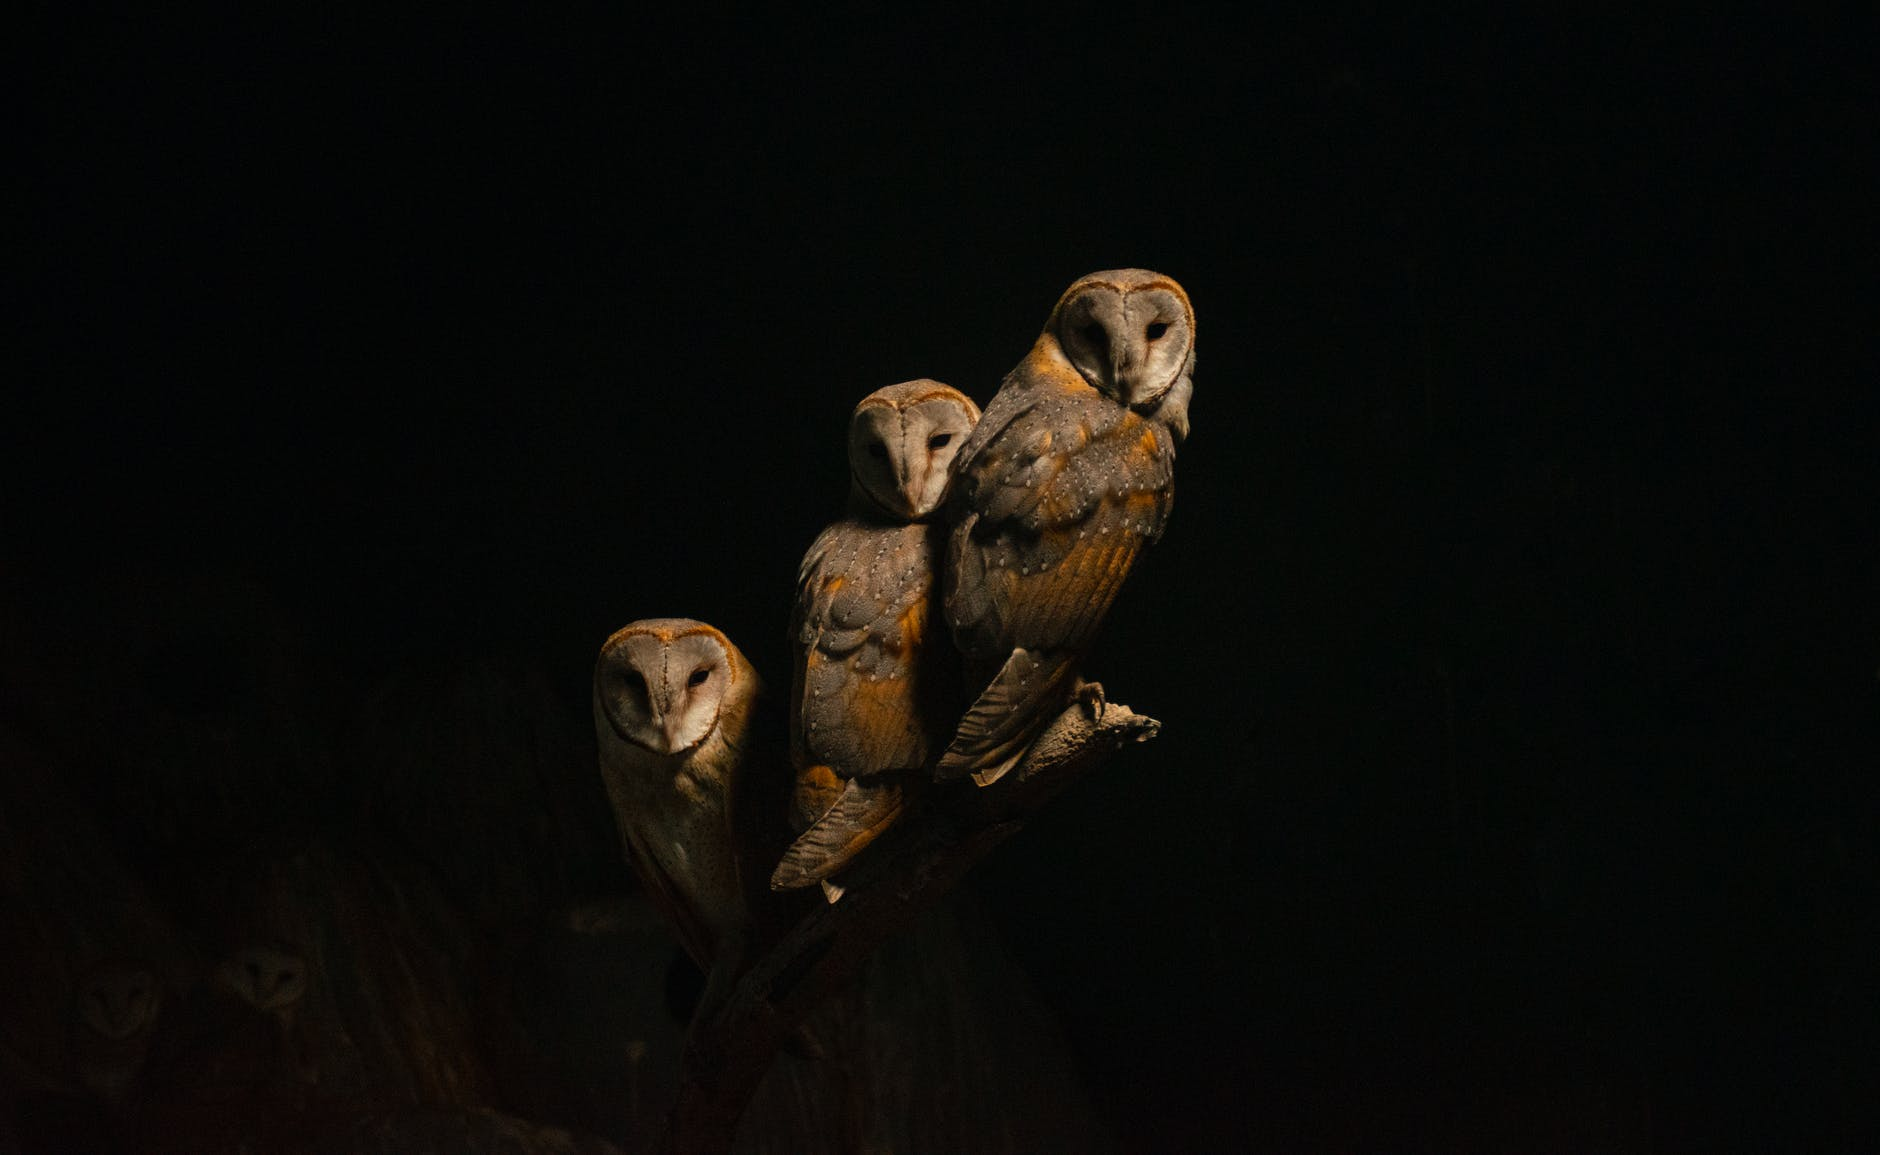 brown owls on a tree branch